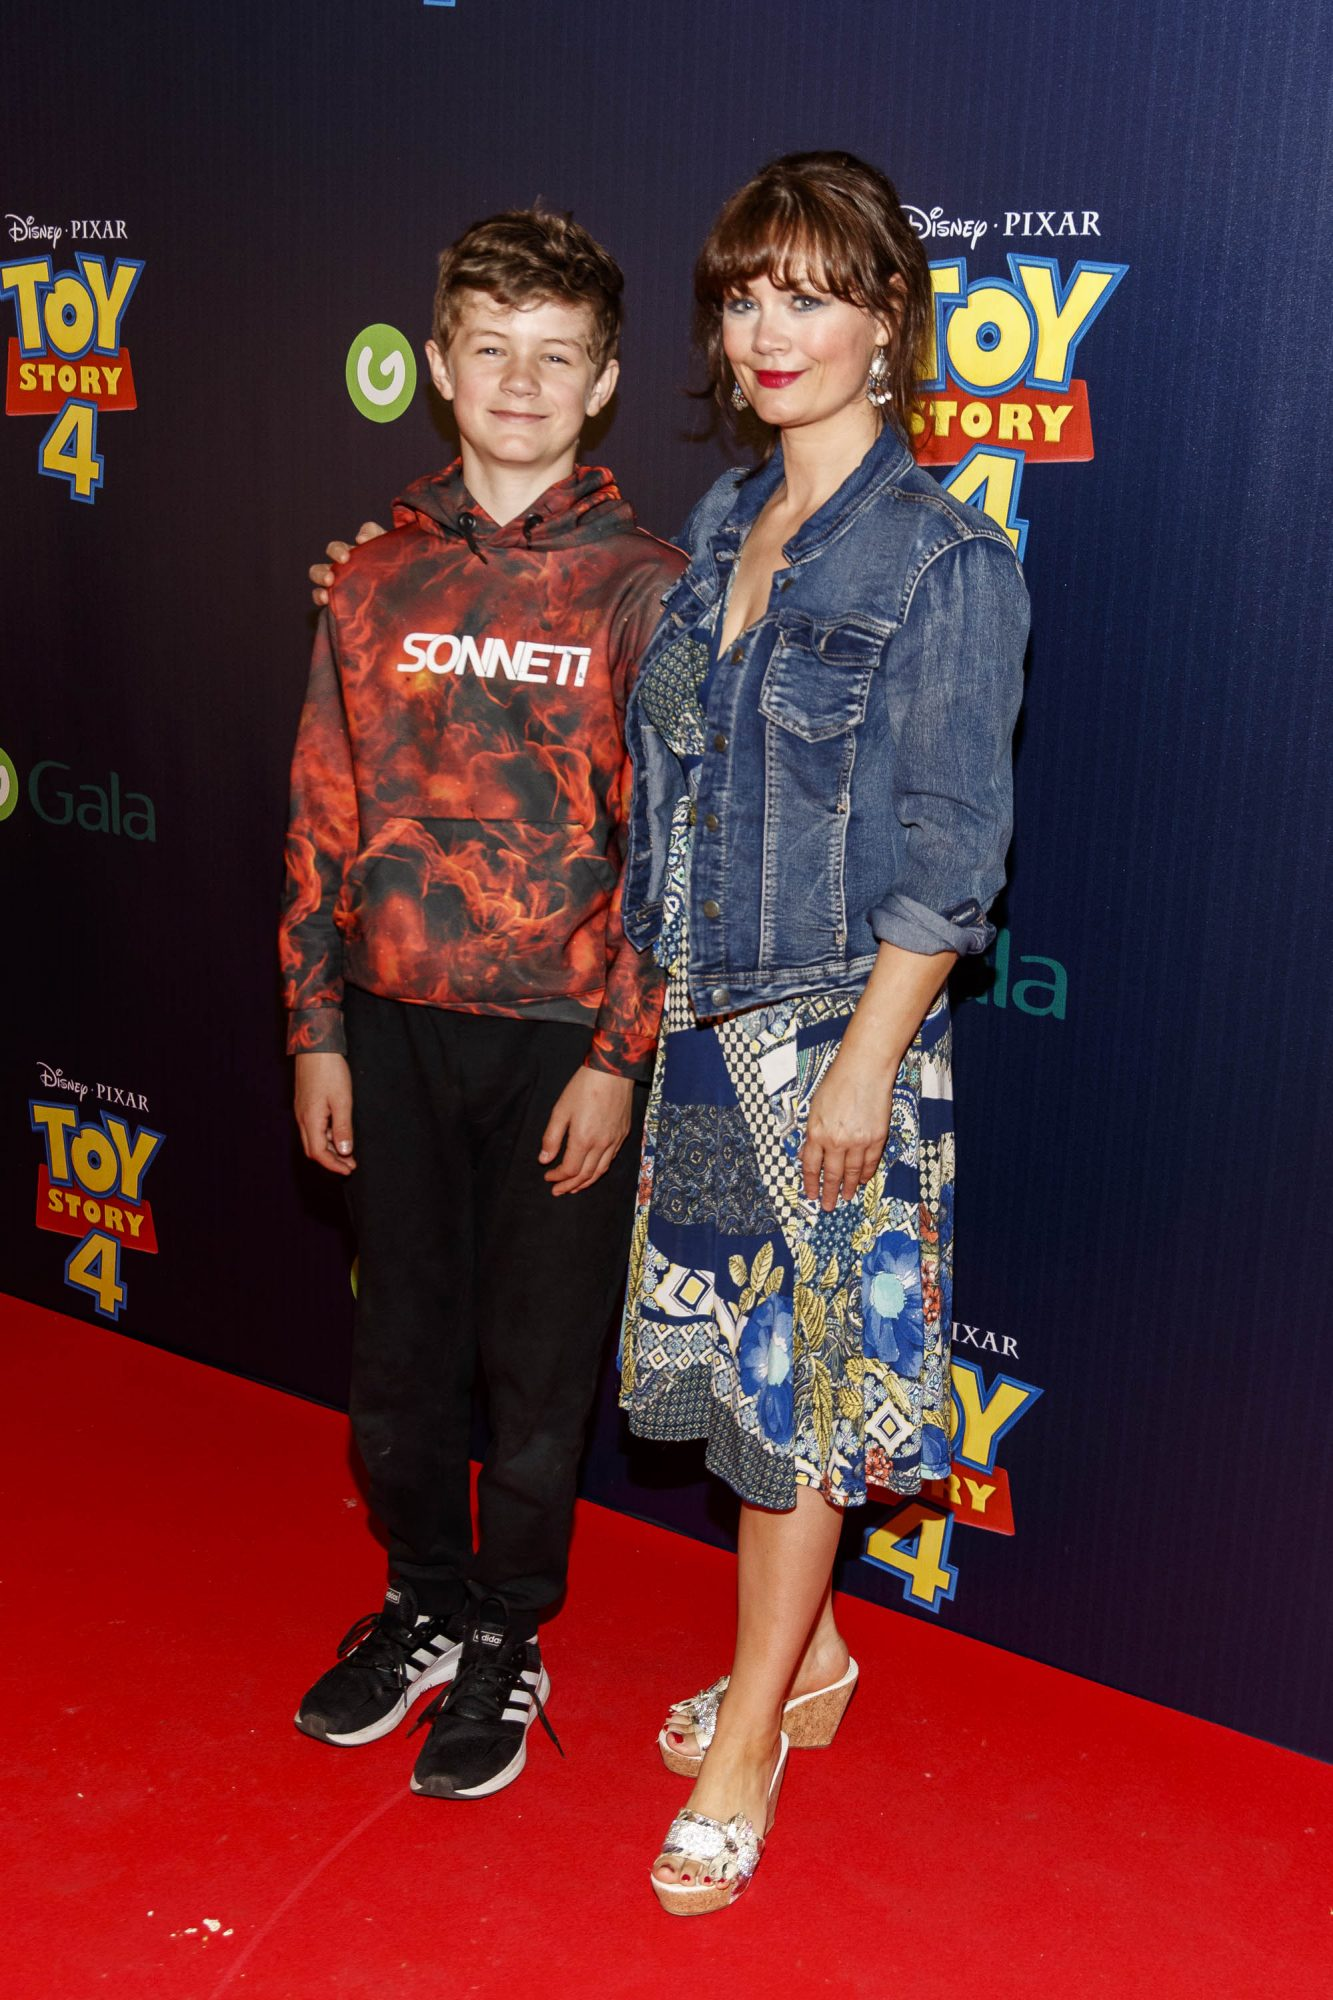 Rachel Pilkington and son Noah pictured at the special event screening of Disney Pixar's TOY STORY 4 in the Light House Cinema Dublin. Picture: Andres Poveda